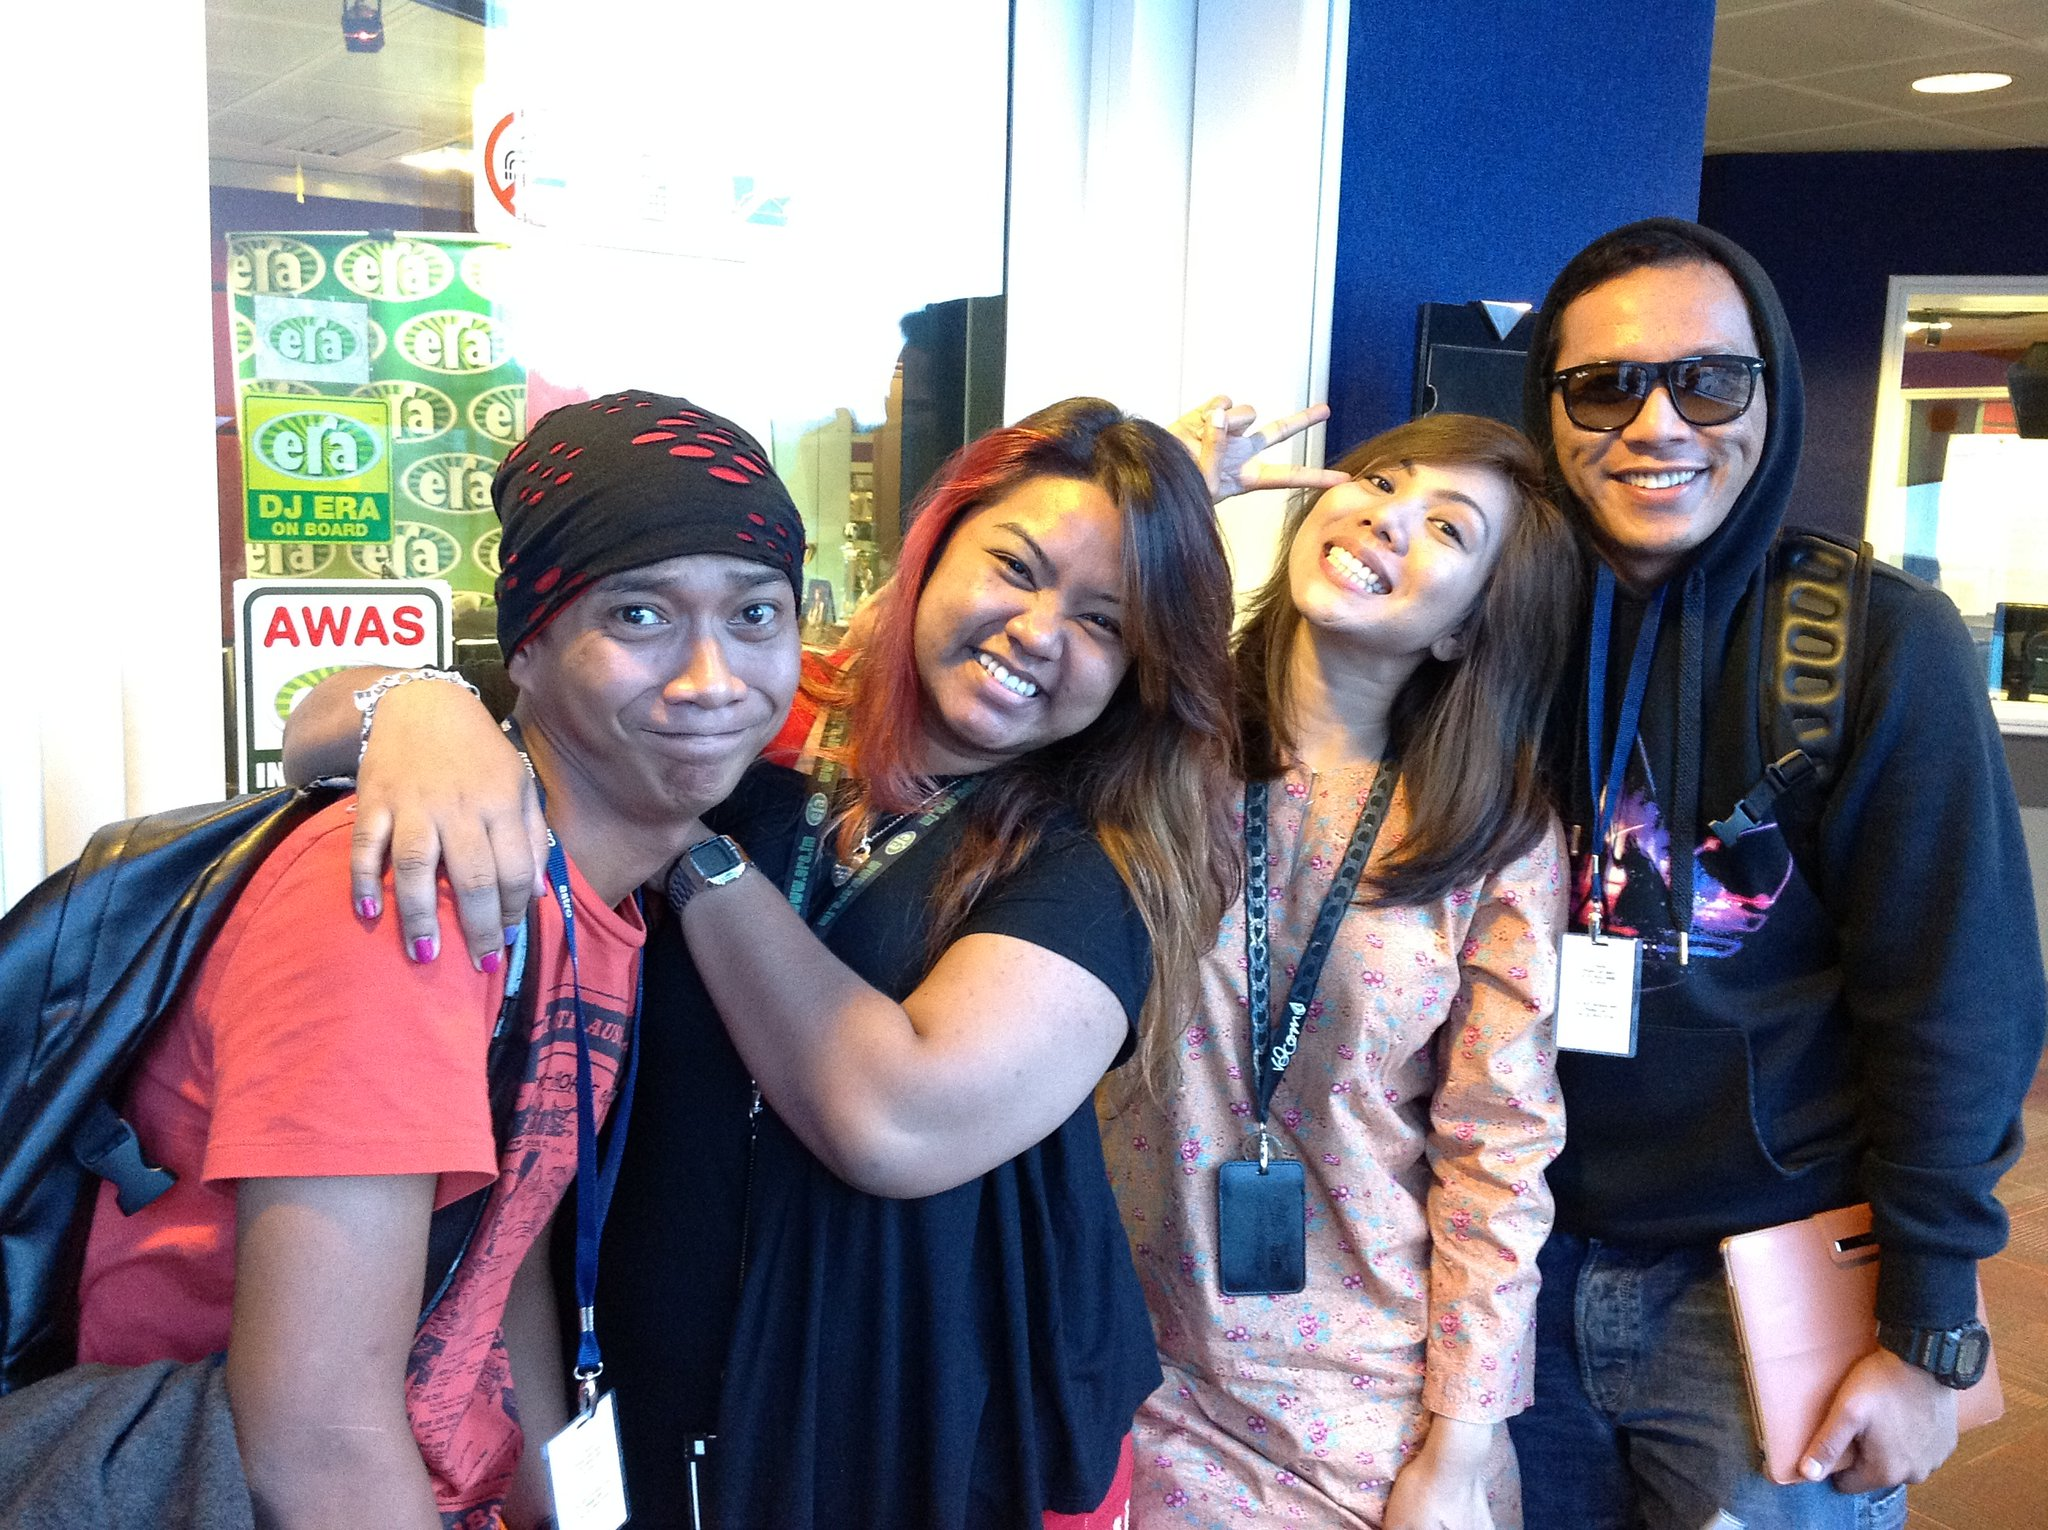 Last day at @era_fm with @shahrol_shiro @IraMohdAmin  @DinaNadzir ..sedey...:( http://t.co/ULIshvX6